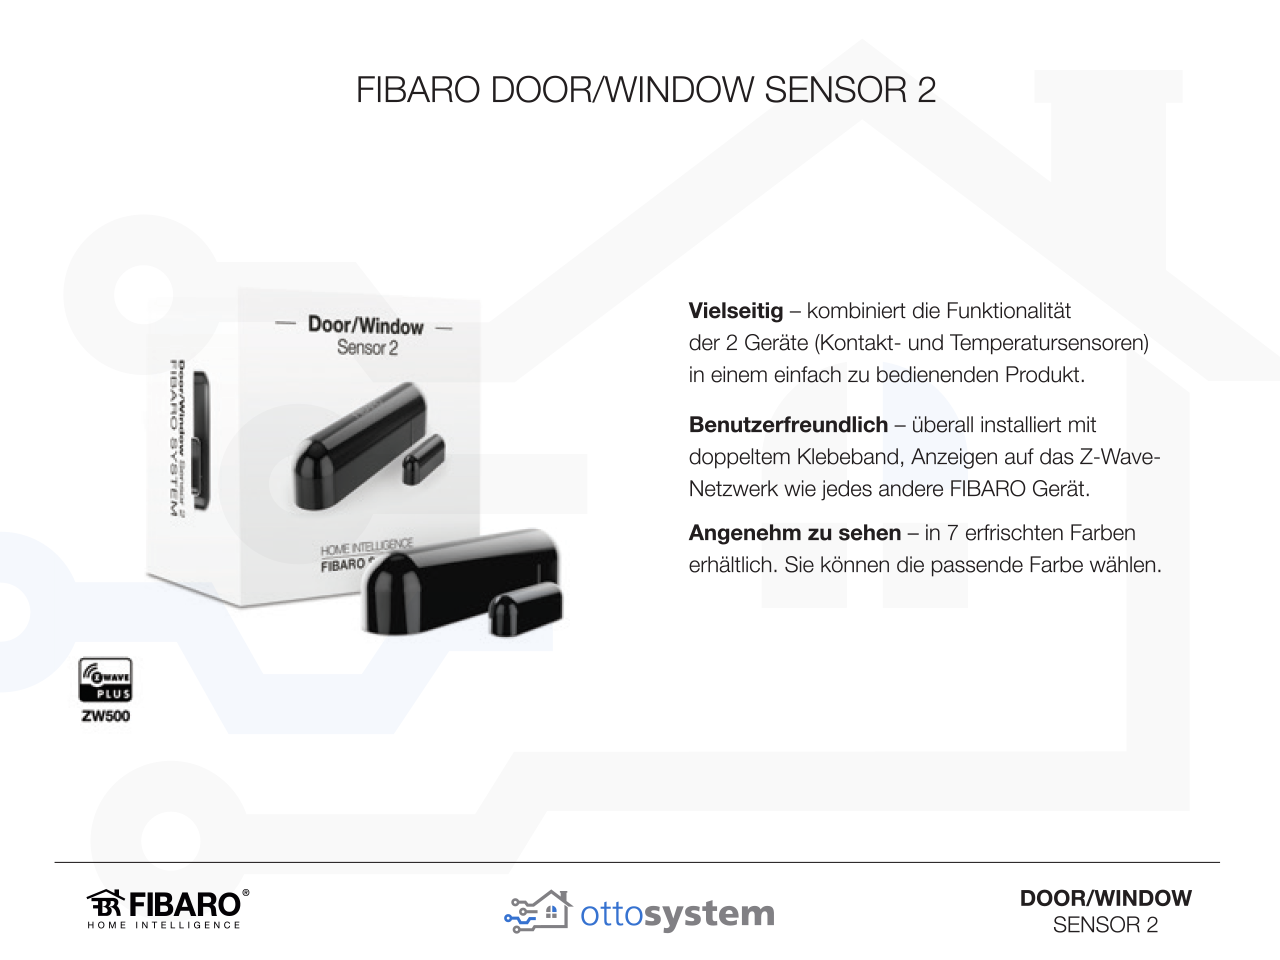 FIBARO-Door-Window-Sensor-2-DE-11